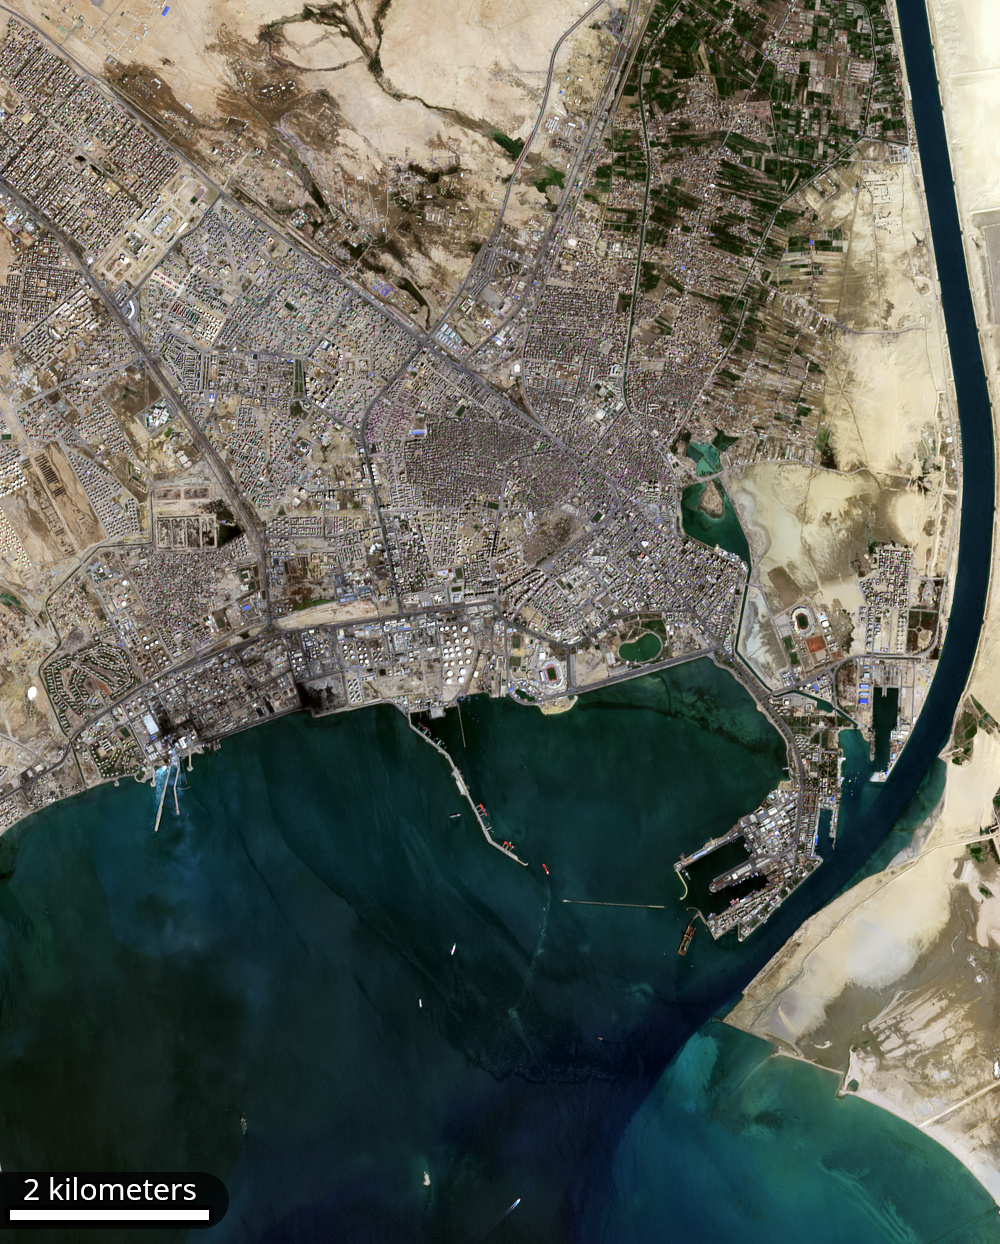 The city of Suez, the port of Tawfiq, and the entrance to the Suez Canal